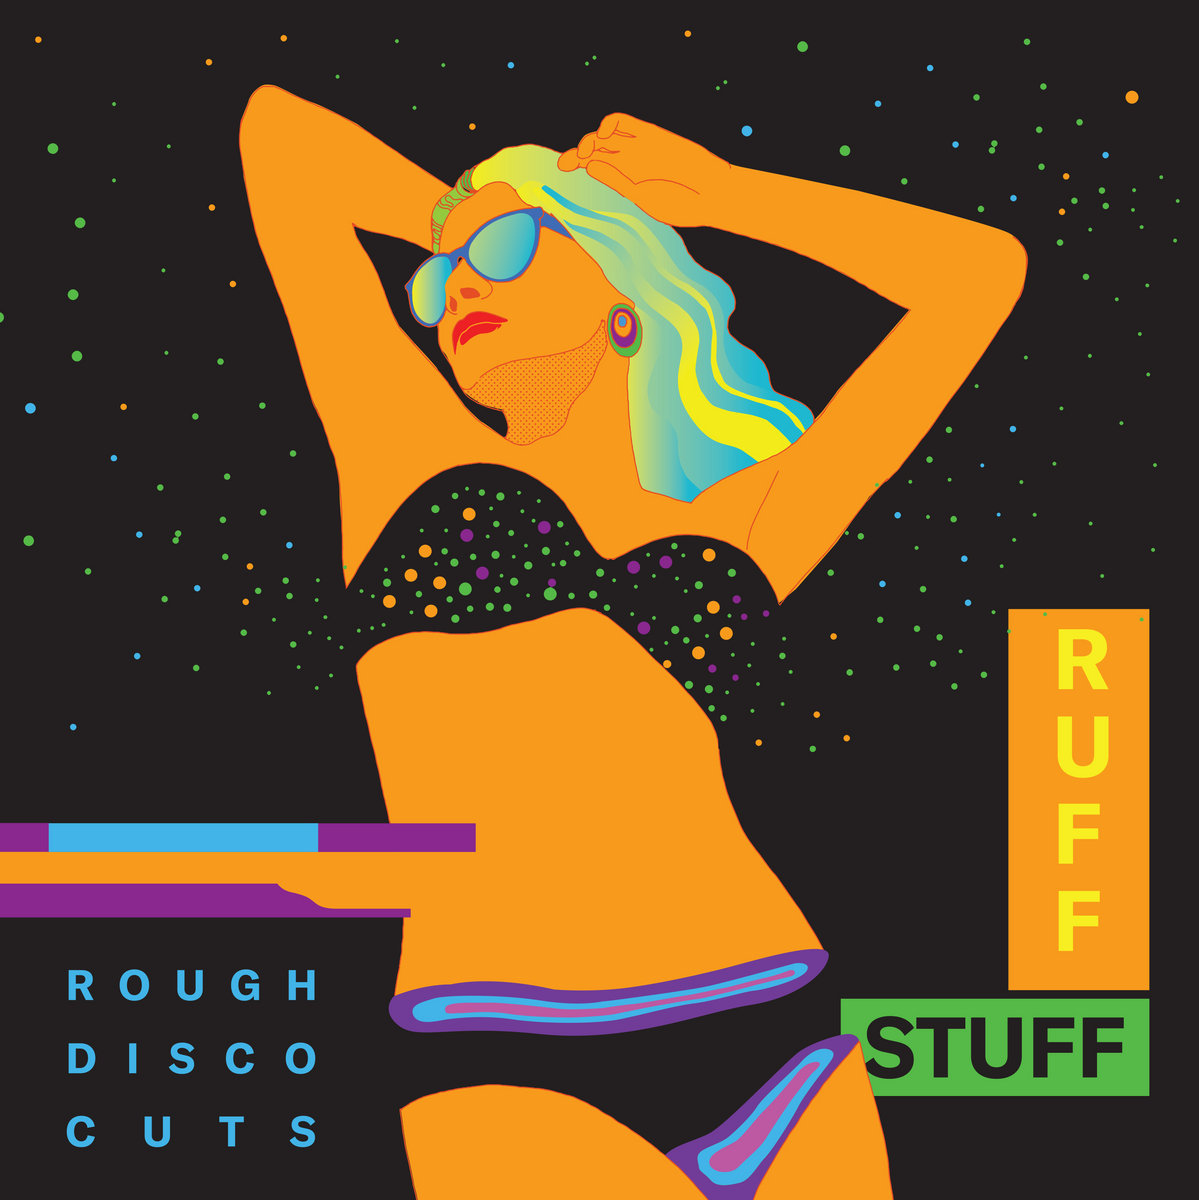 from Rough Disco Cuts (BBC - 005) by Rough Stuff